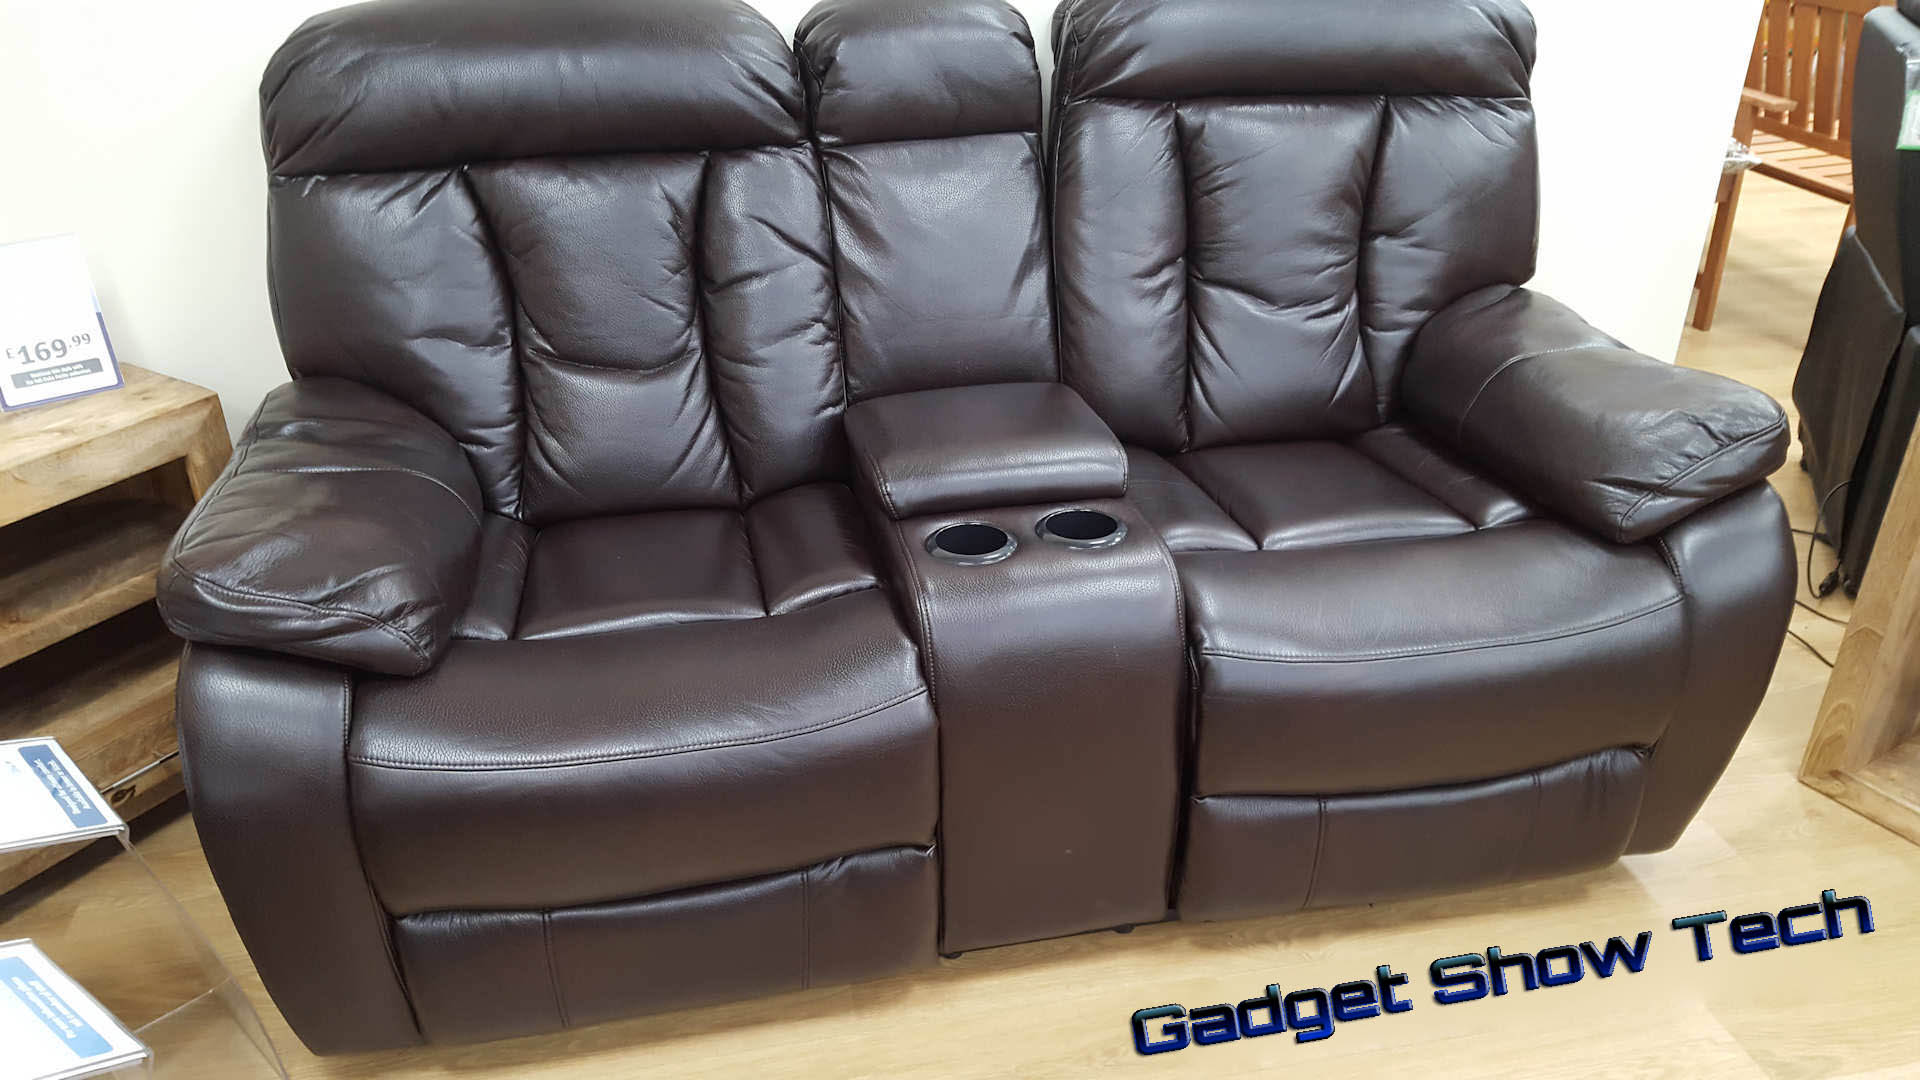 Two Seater Console Recliner sofa